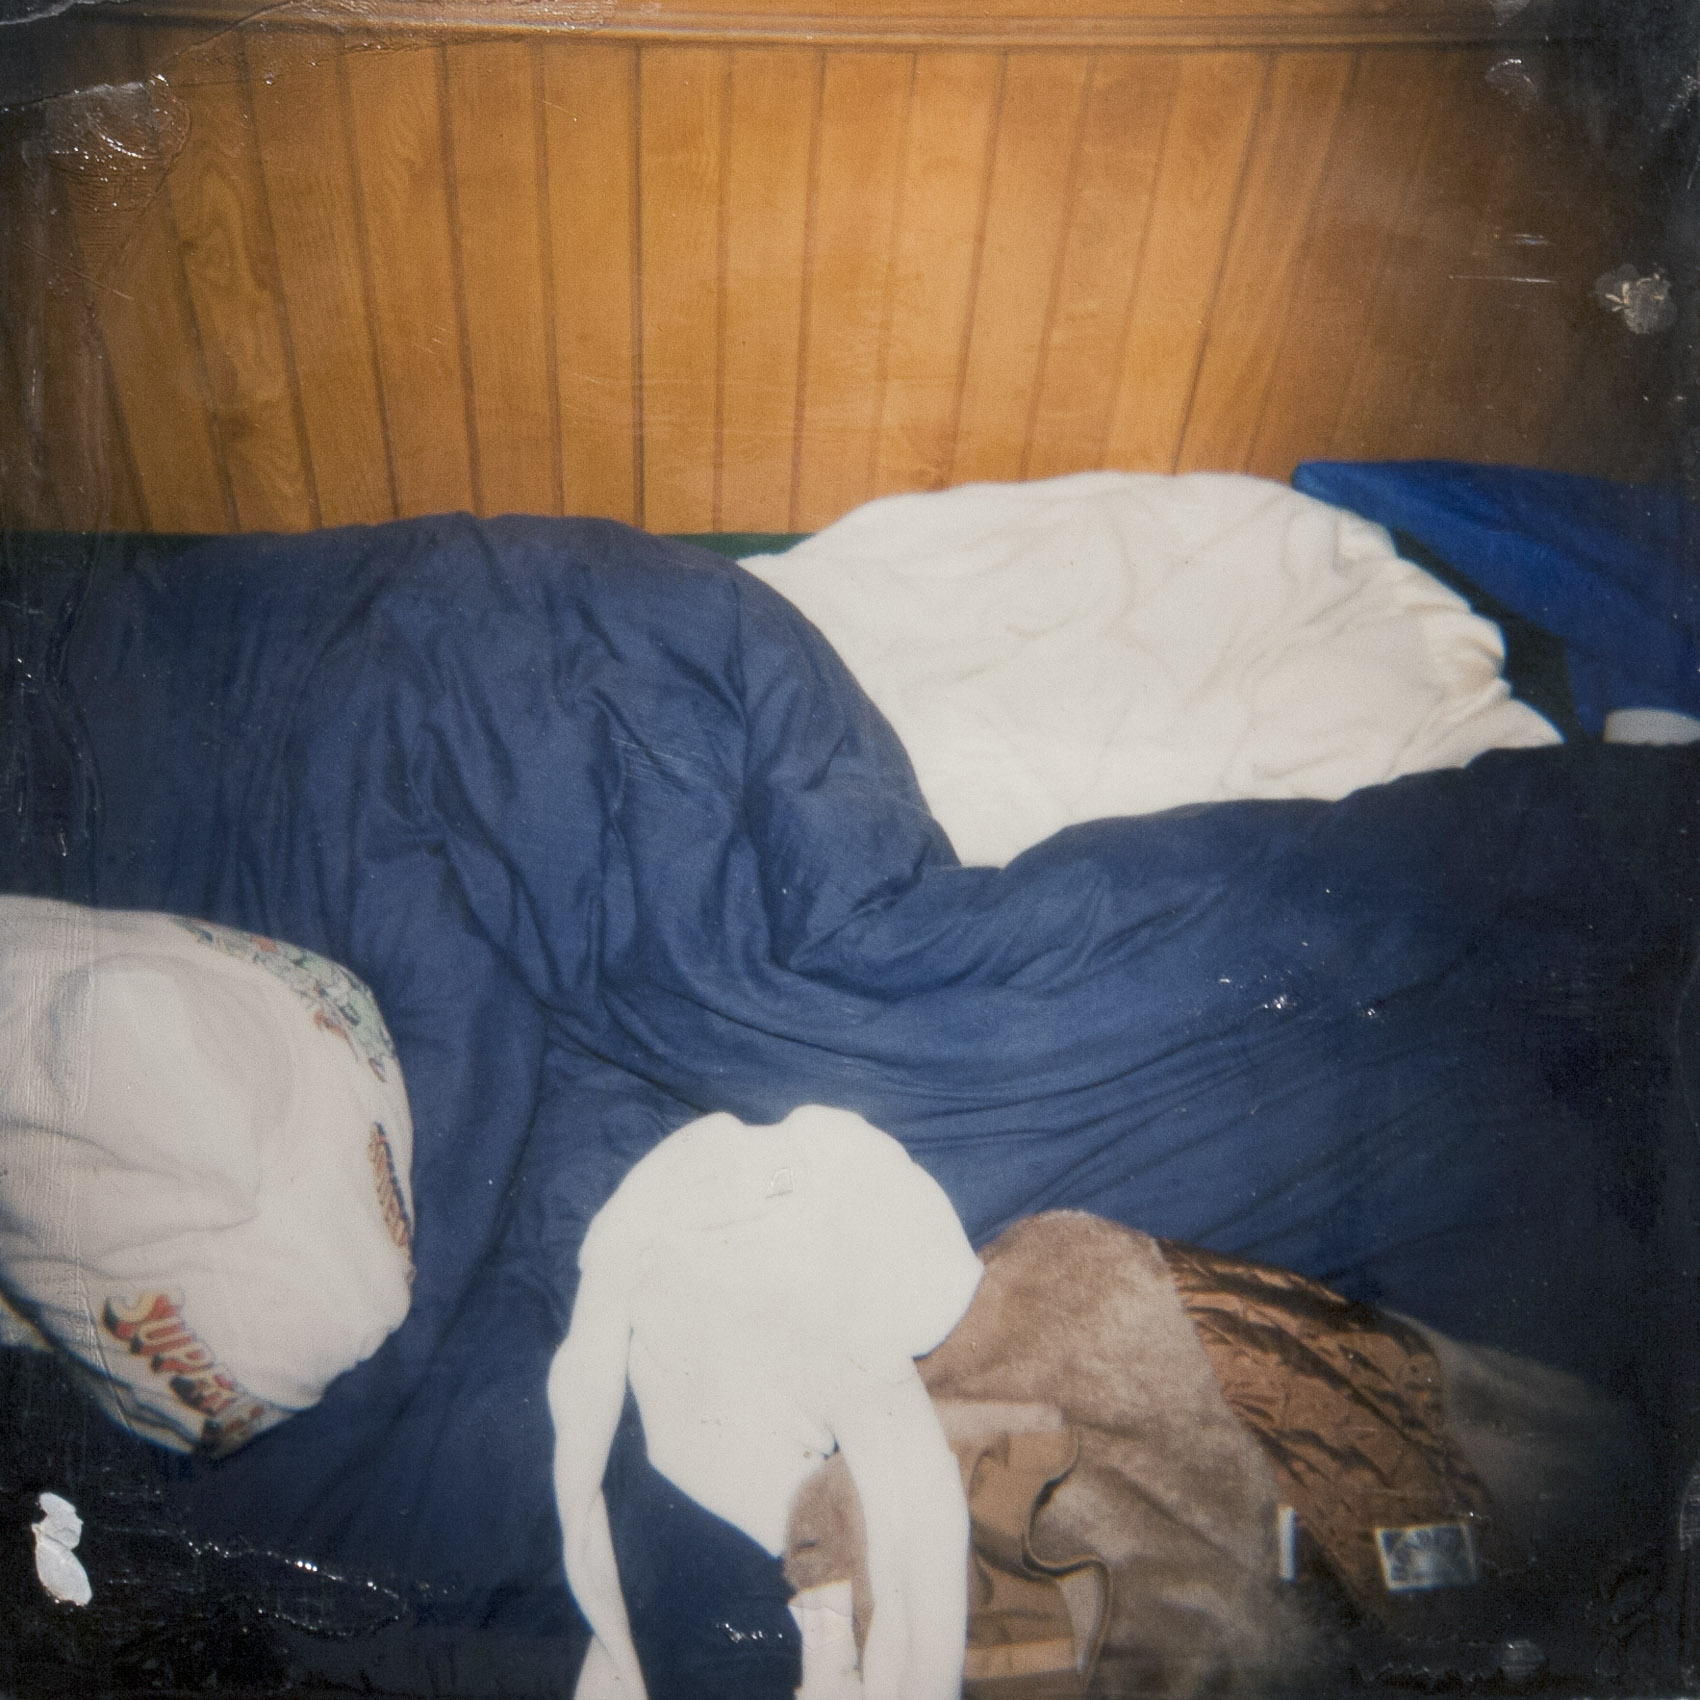 Unmade Bed (with Superman pillow) v.1 from the series The Santa Cruz Kids